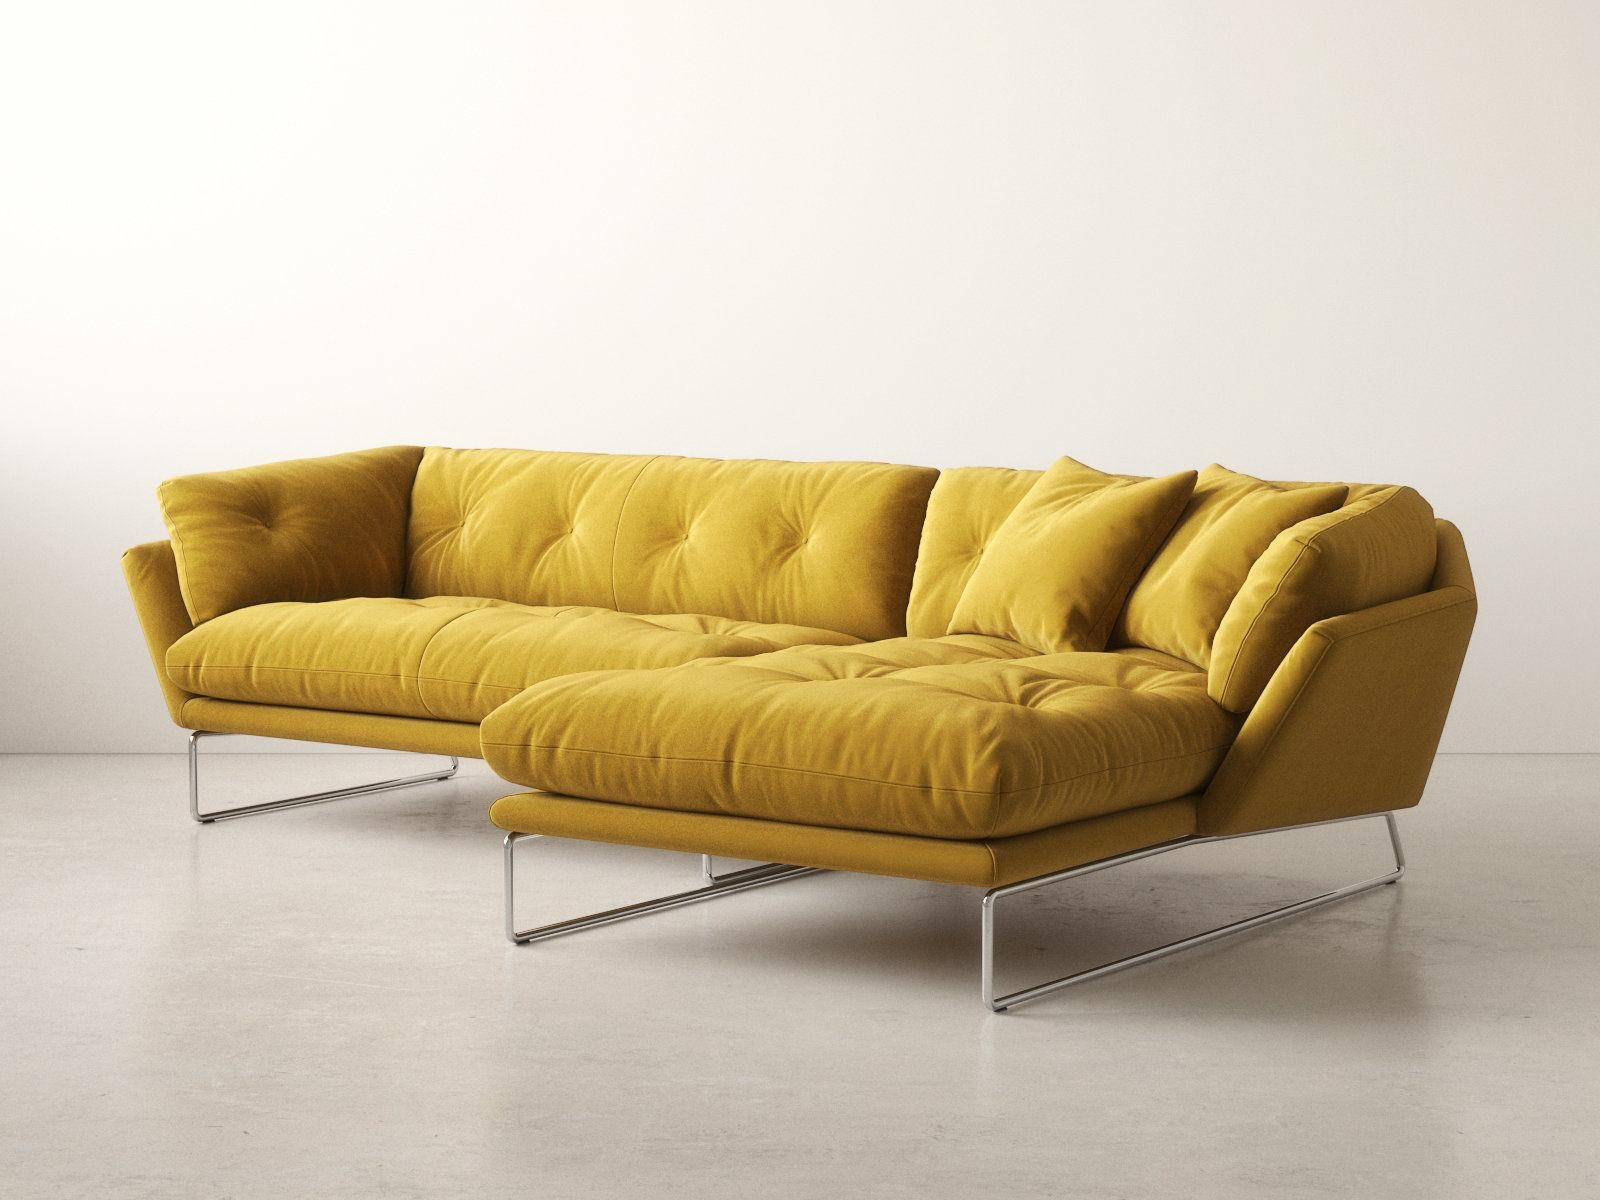 Low Height Sofas Normal Sofa Height Styling Chair Kursi Dimension Inside Low Height Sofas (Image 5 of 7)